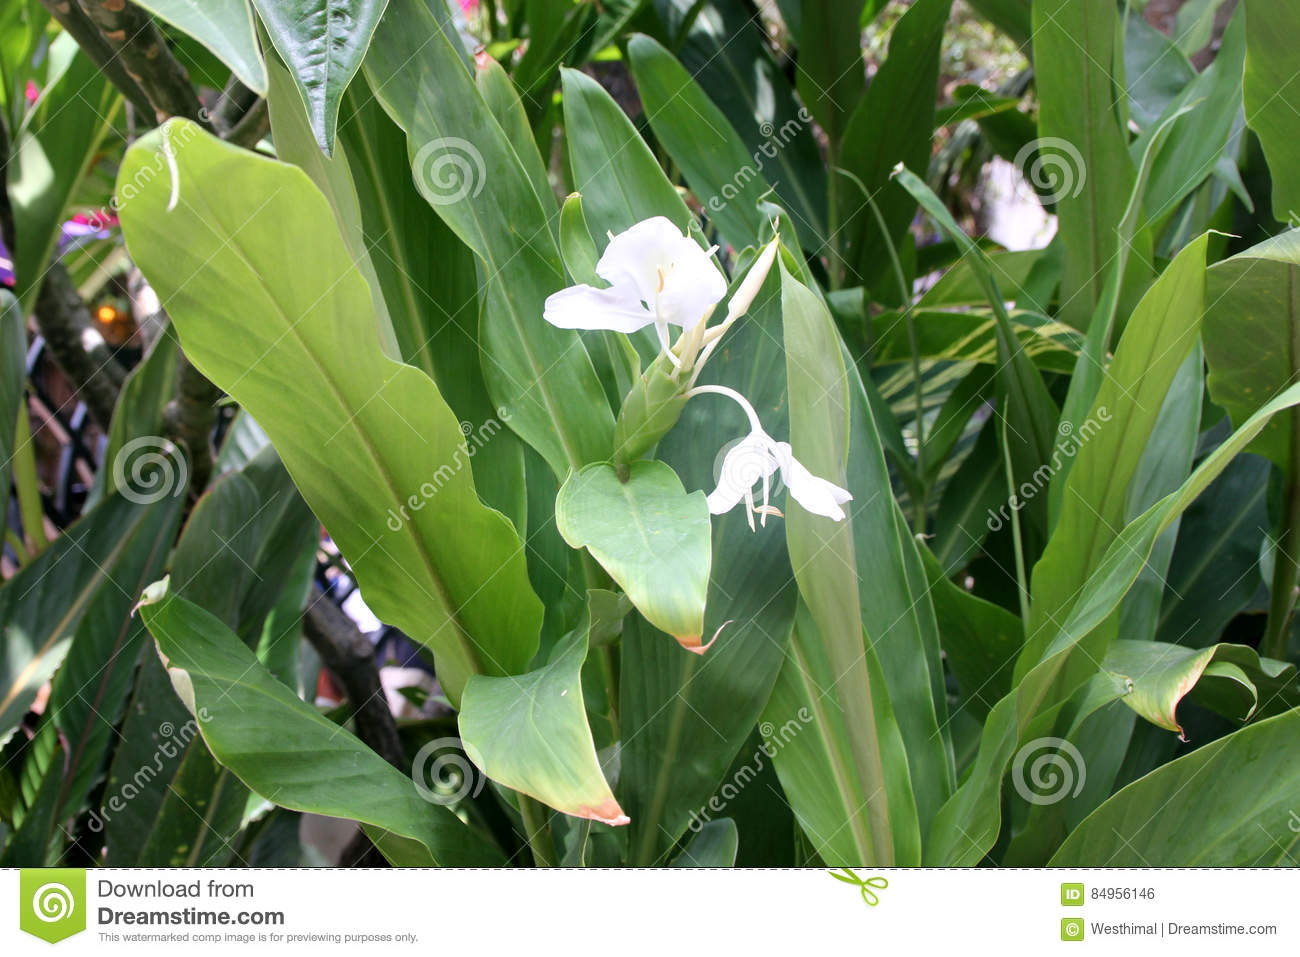 Hedychium coronarium white garland lily white ginger lily stock hedychium coronarium white garland lily white ginger lily rhizomatous ornamental perennial with large lanceolate leaves and white fragrant butterfly like izmirmasajfo